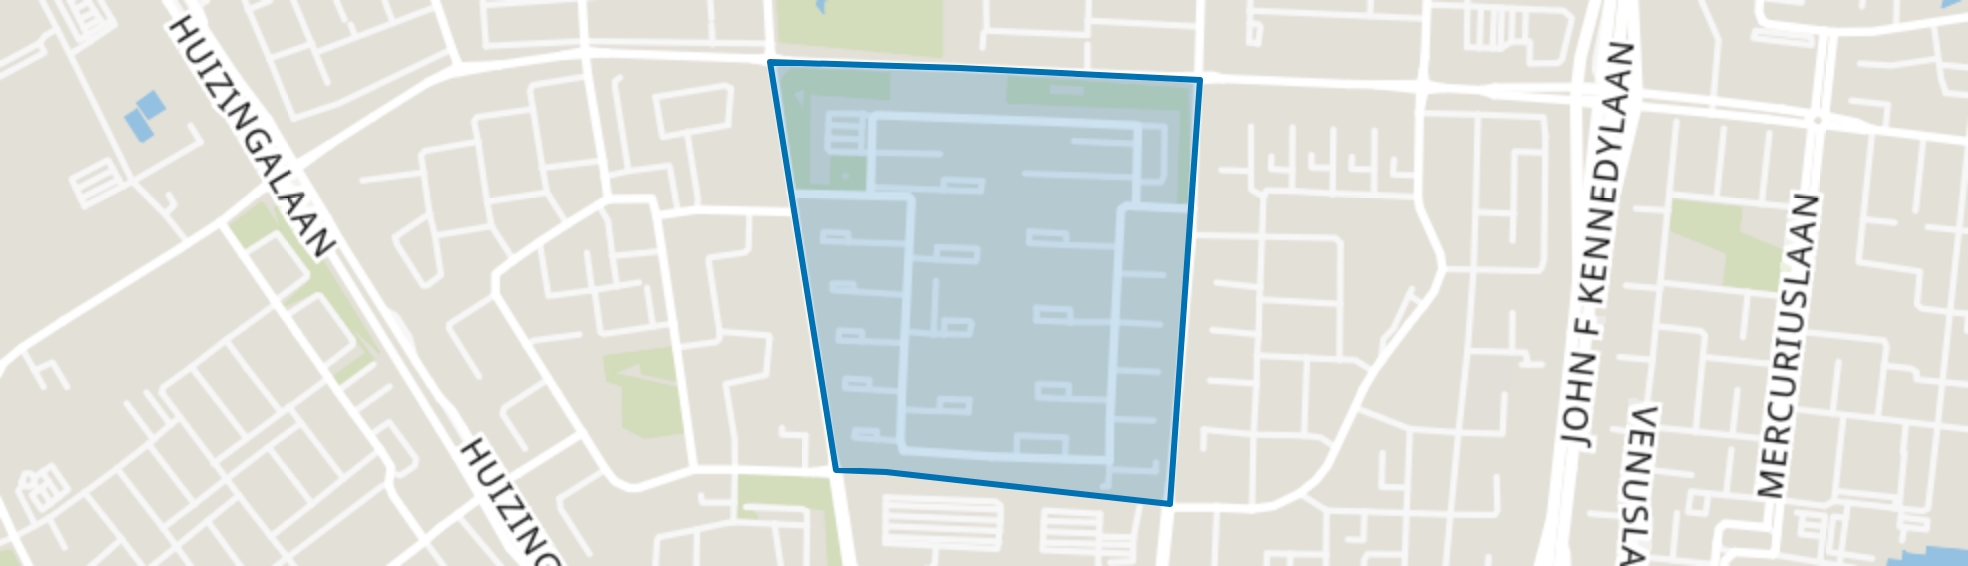 't Hool, Eindhoven map